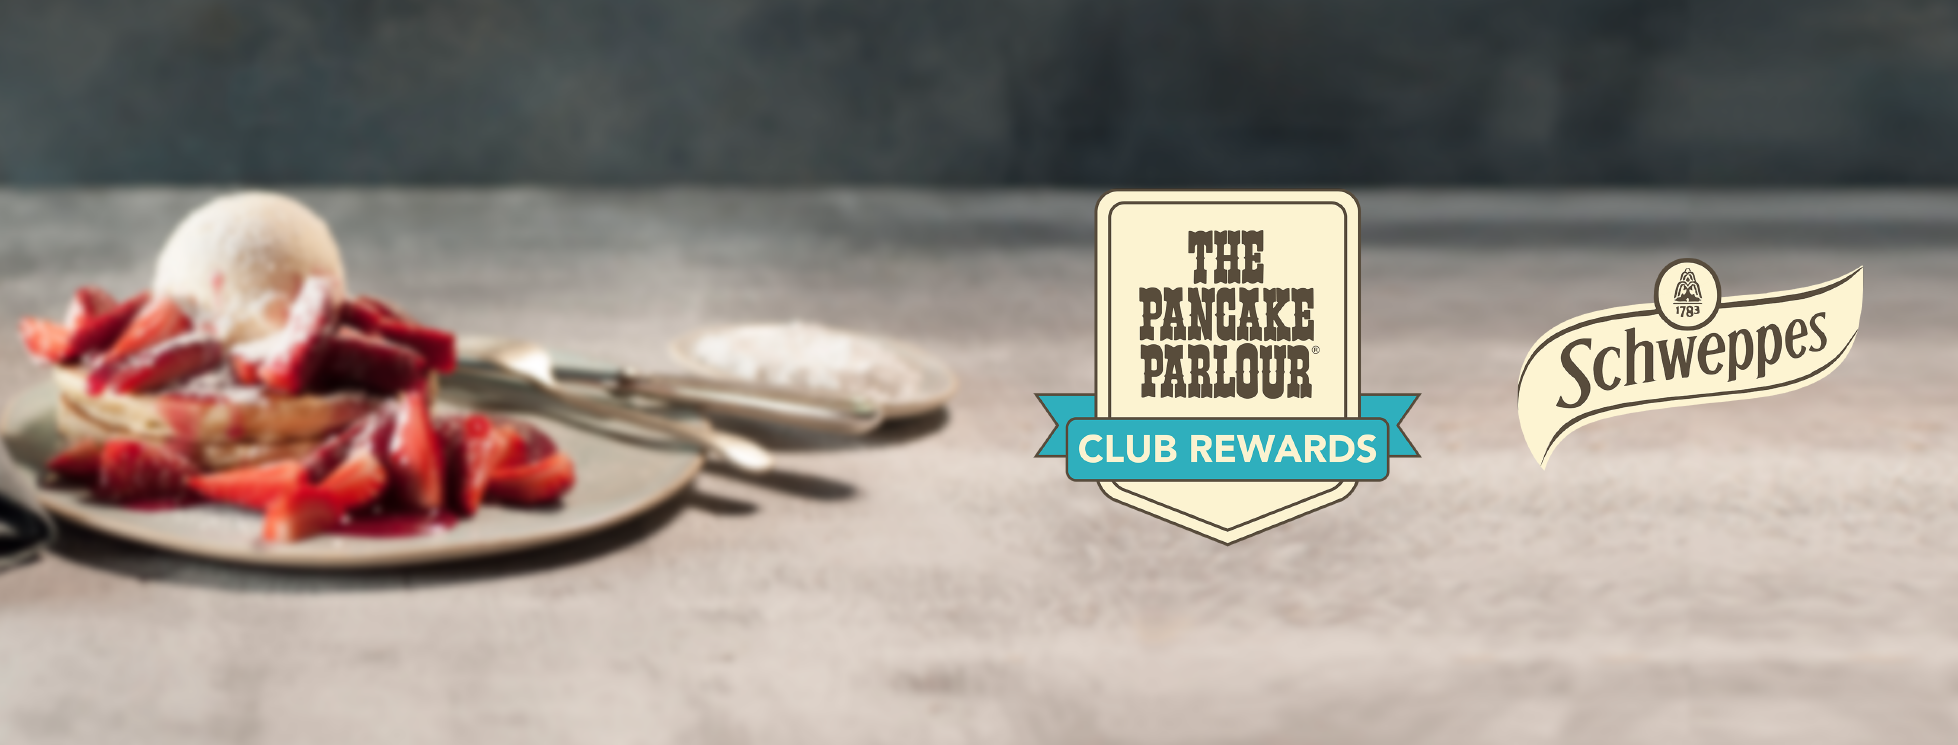 TPP-club-rewards-schweppes-partner-header-01.png